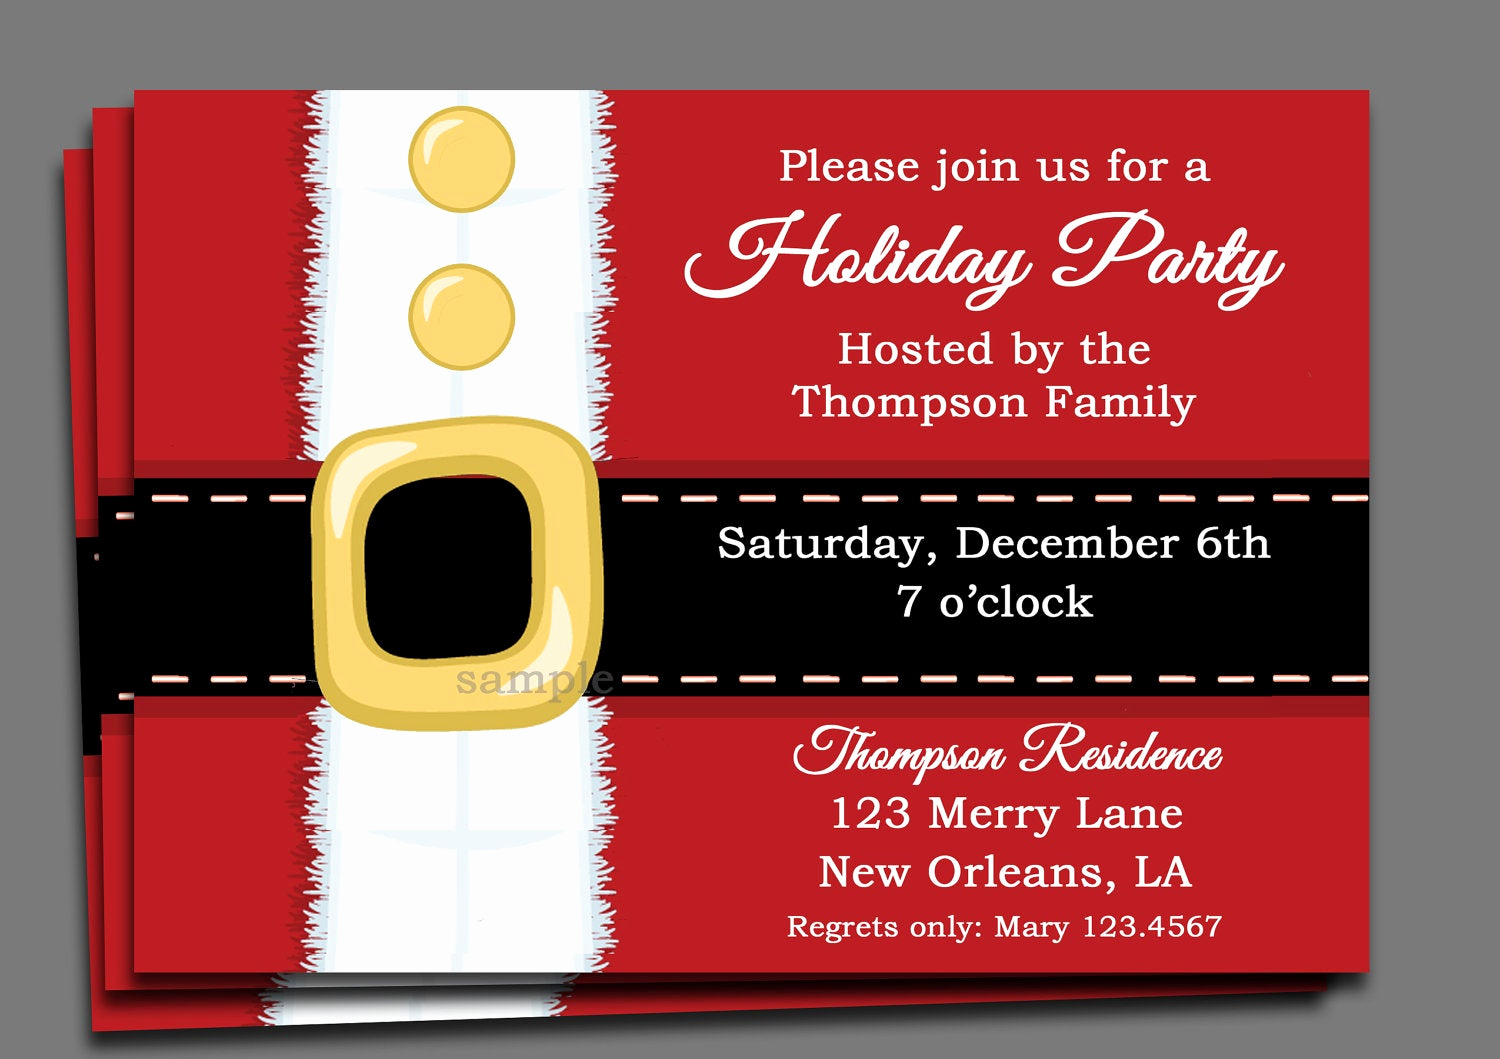 Christmas Party Invitation Ideas Unique Christmas Party Invitation Printable or Printed with Free